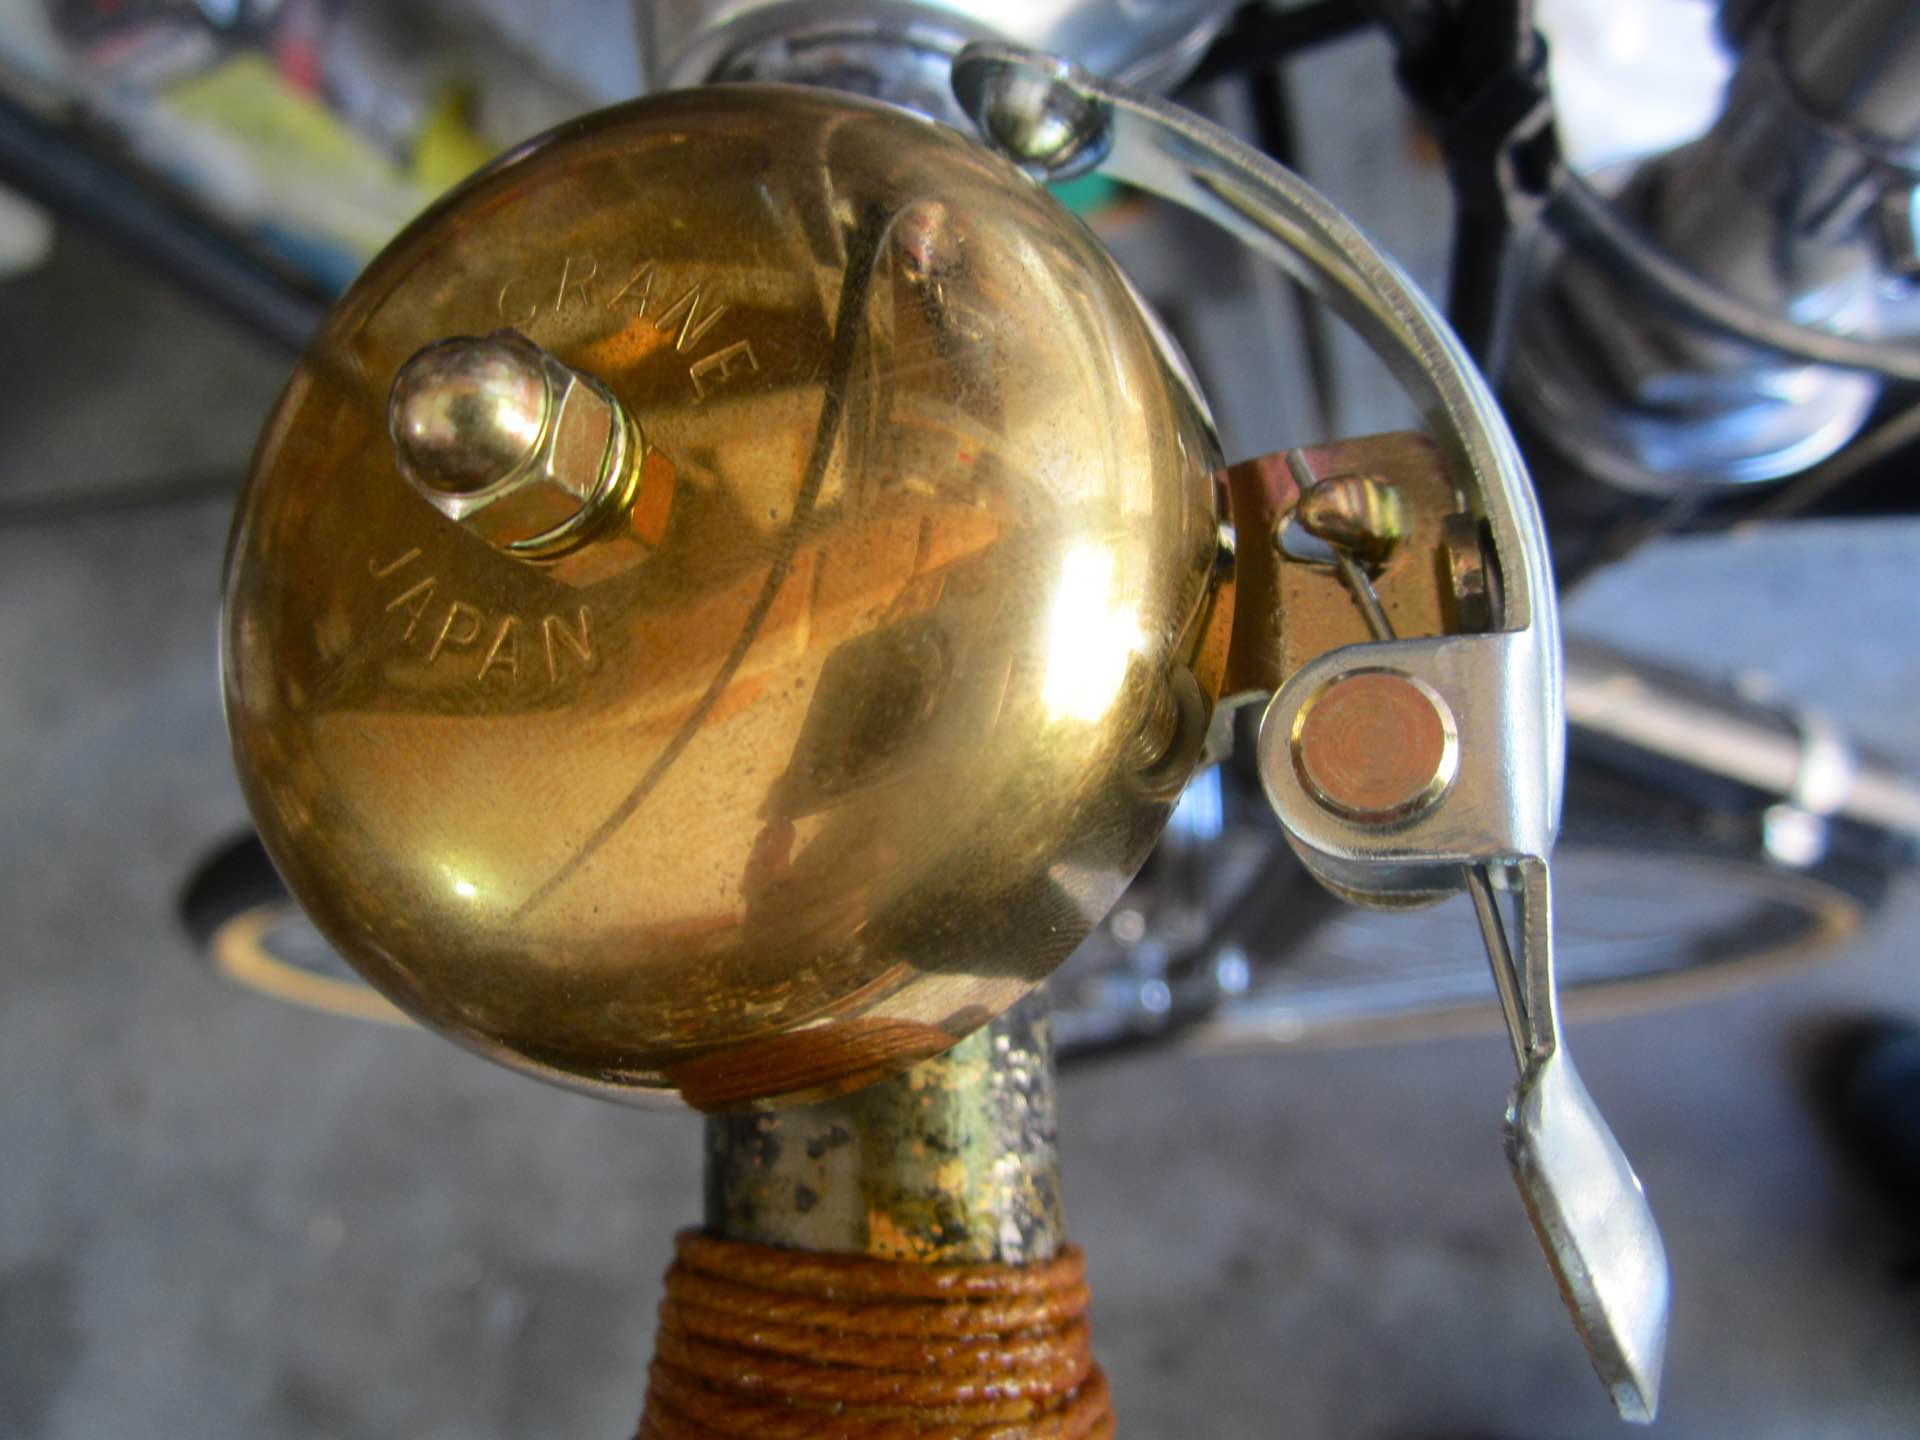 Crane's Suzu lever-strike bicycle bell. ($12)Photo: A New Recyclist